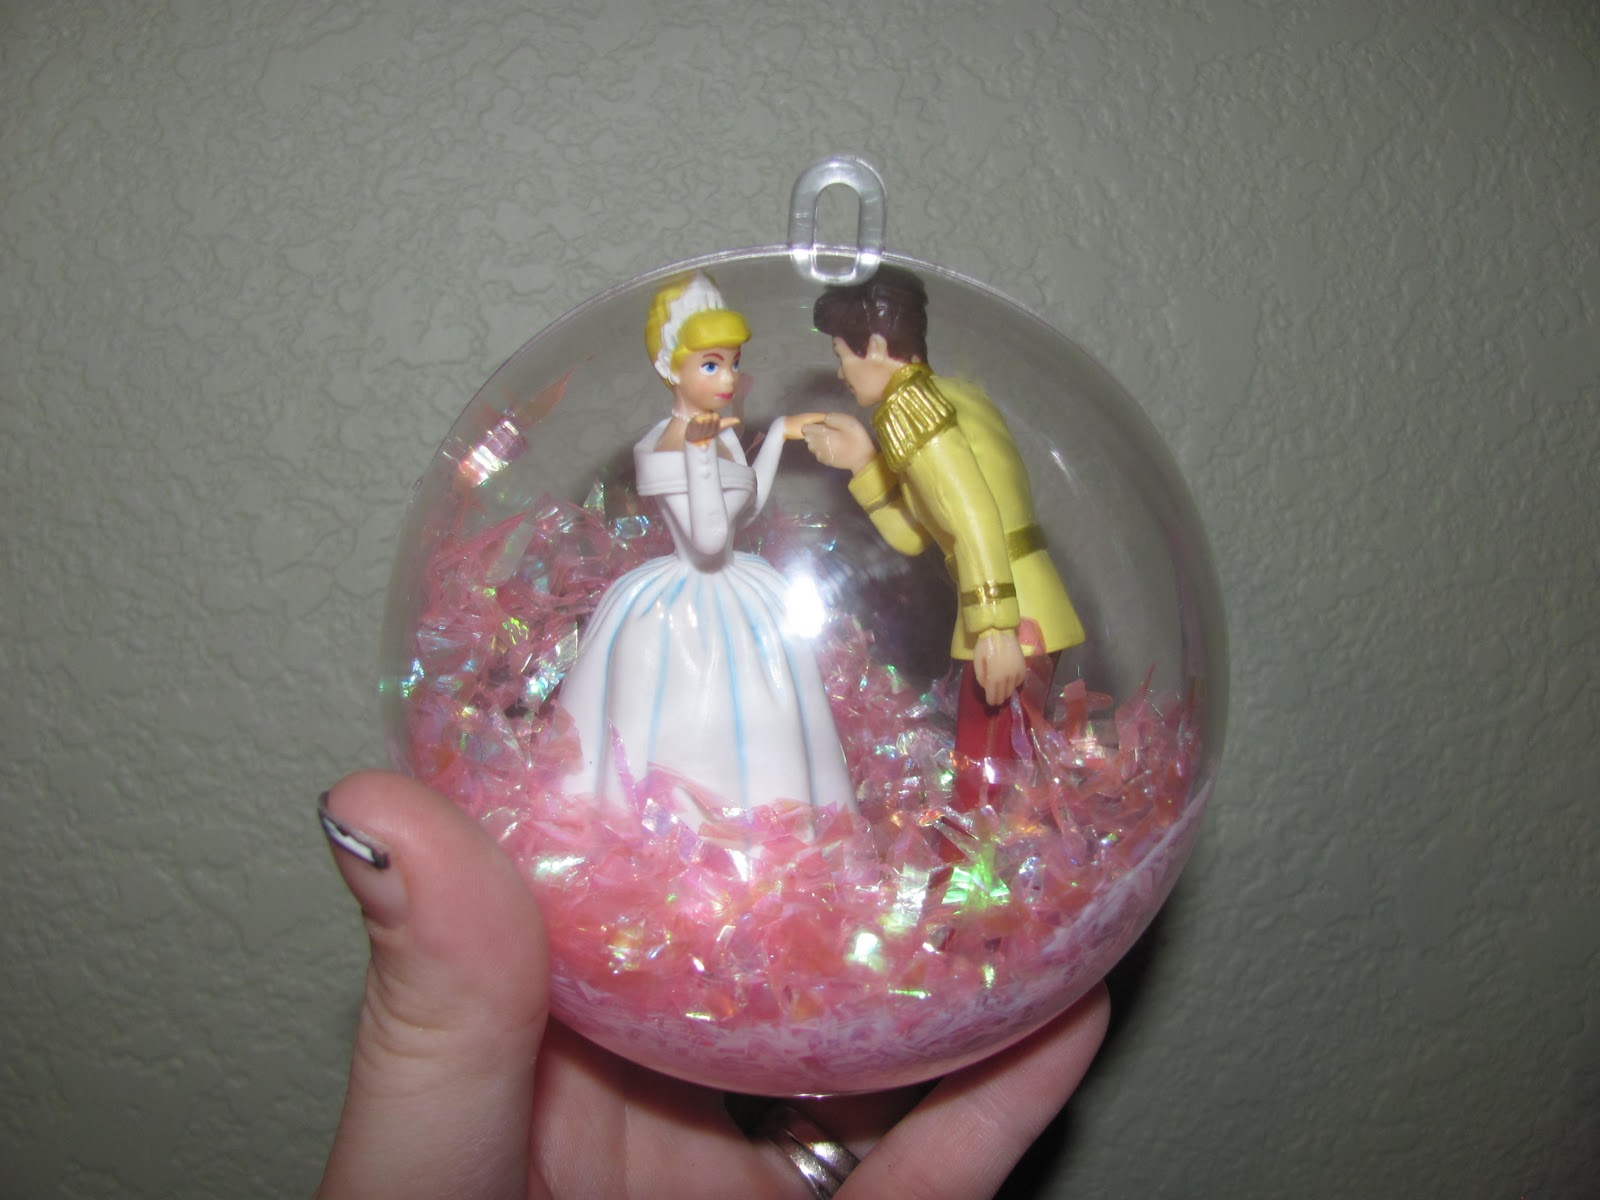 101 handmade christmas ornament ideas - Diy Disney Christmas Ornaments